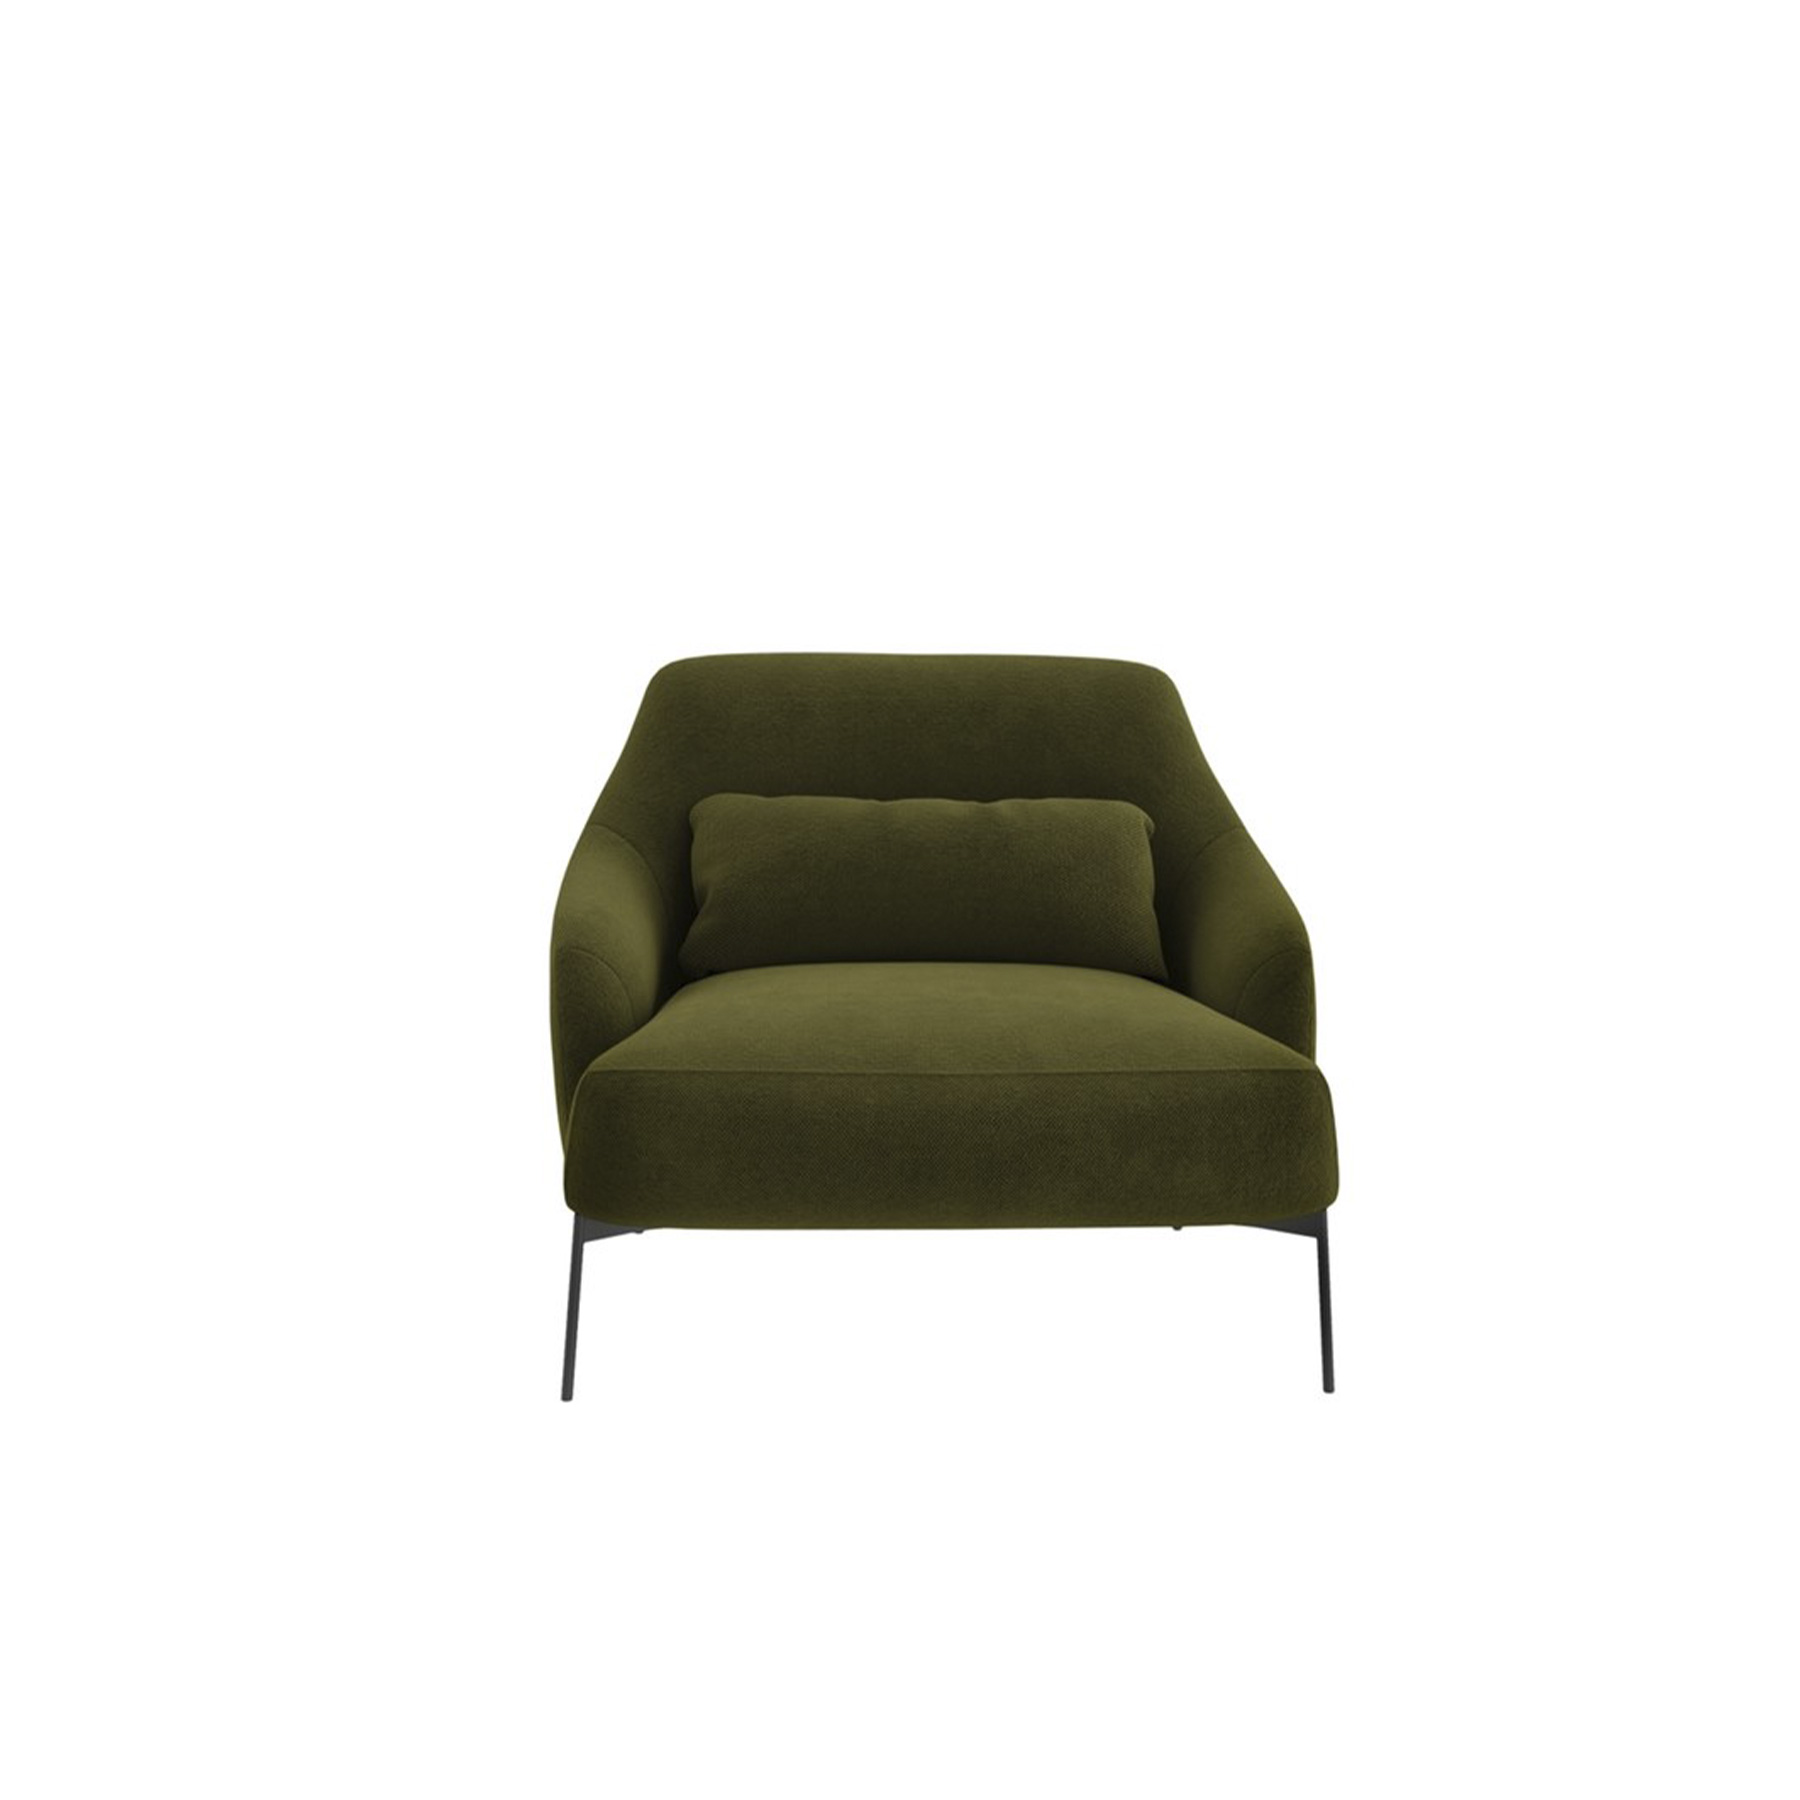 Lima Lounge Armchair - A system consisting of sofas and armchairs in different sizes, with a markedly sleek shape to receive the body nicely. Extra comfort is given by the large lumbar supporting cushion on the ample seat. Elegantly thin are the feet at the base of the frame, adding a touch of dynamism to the cosiness.   | Matter of Stuff